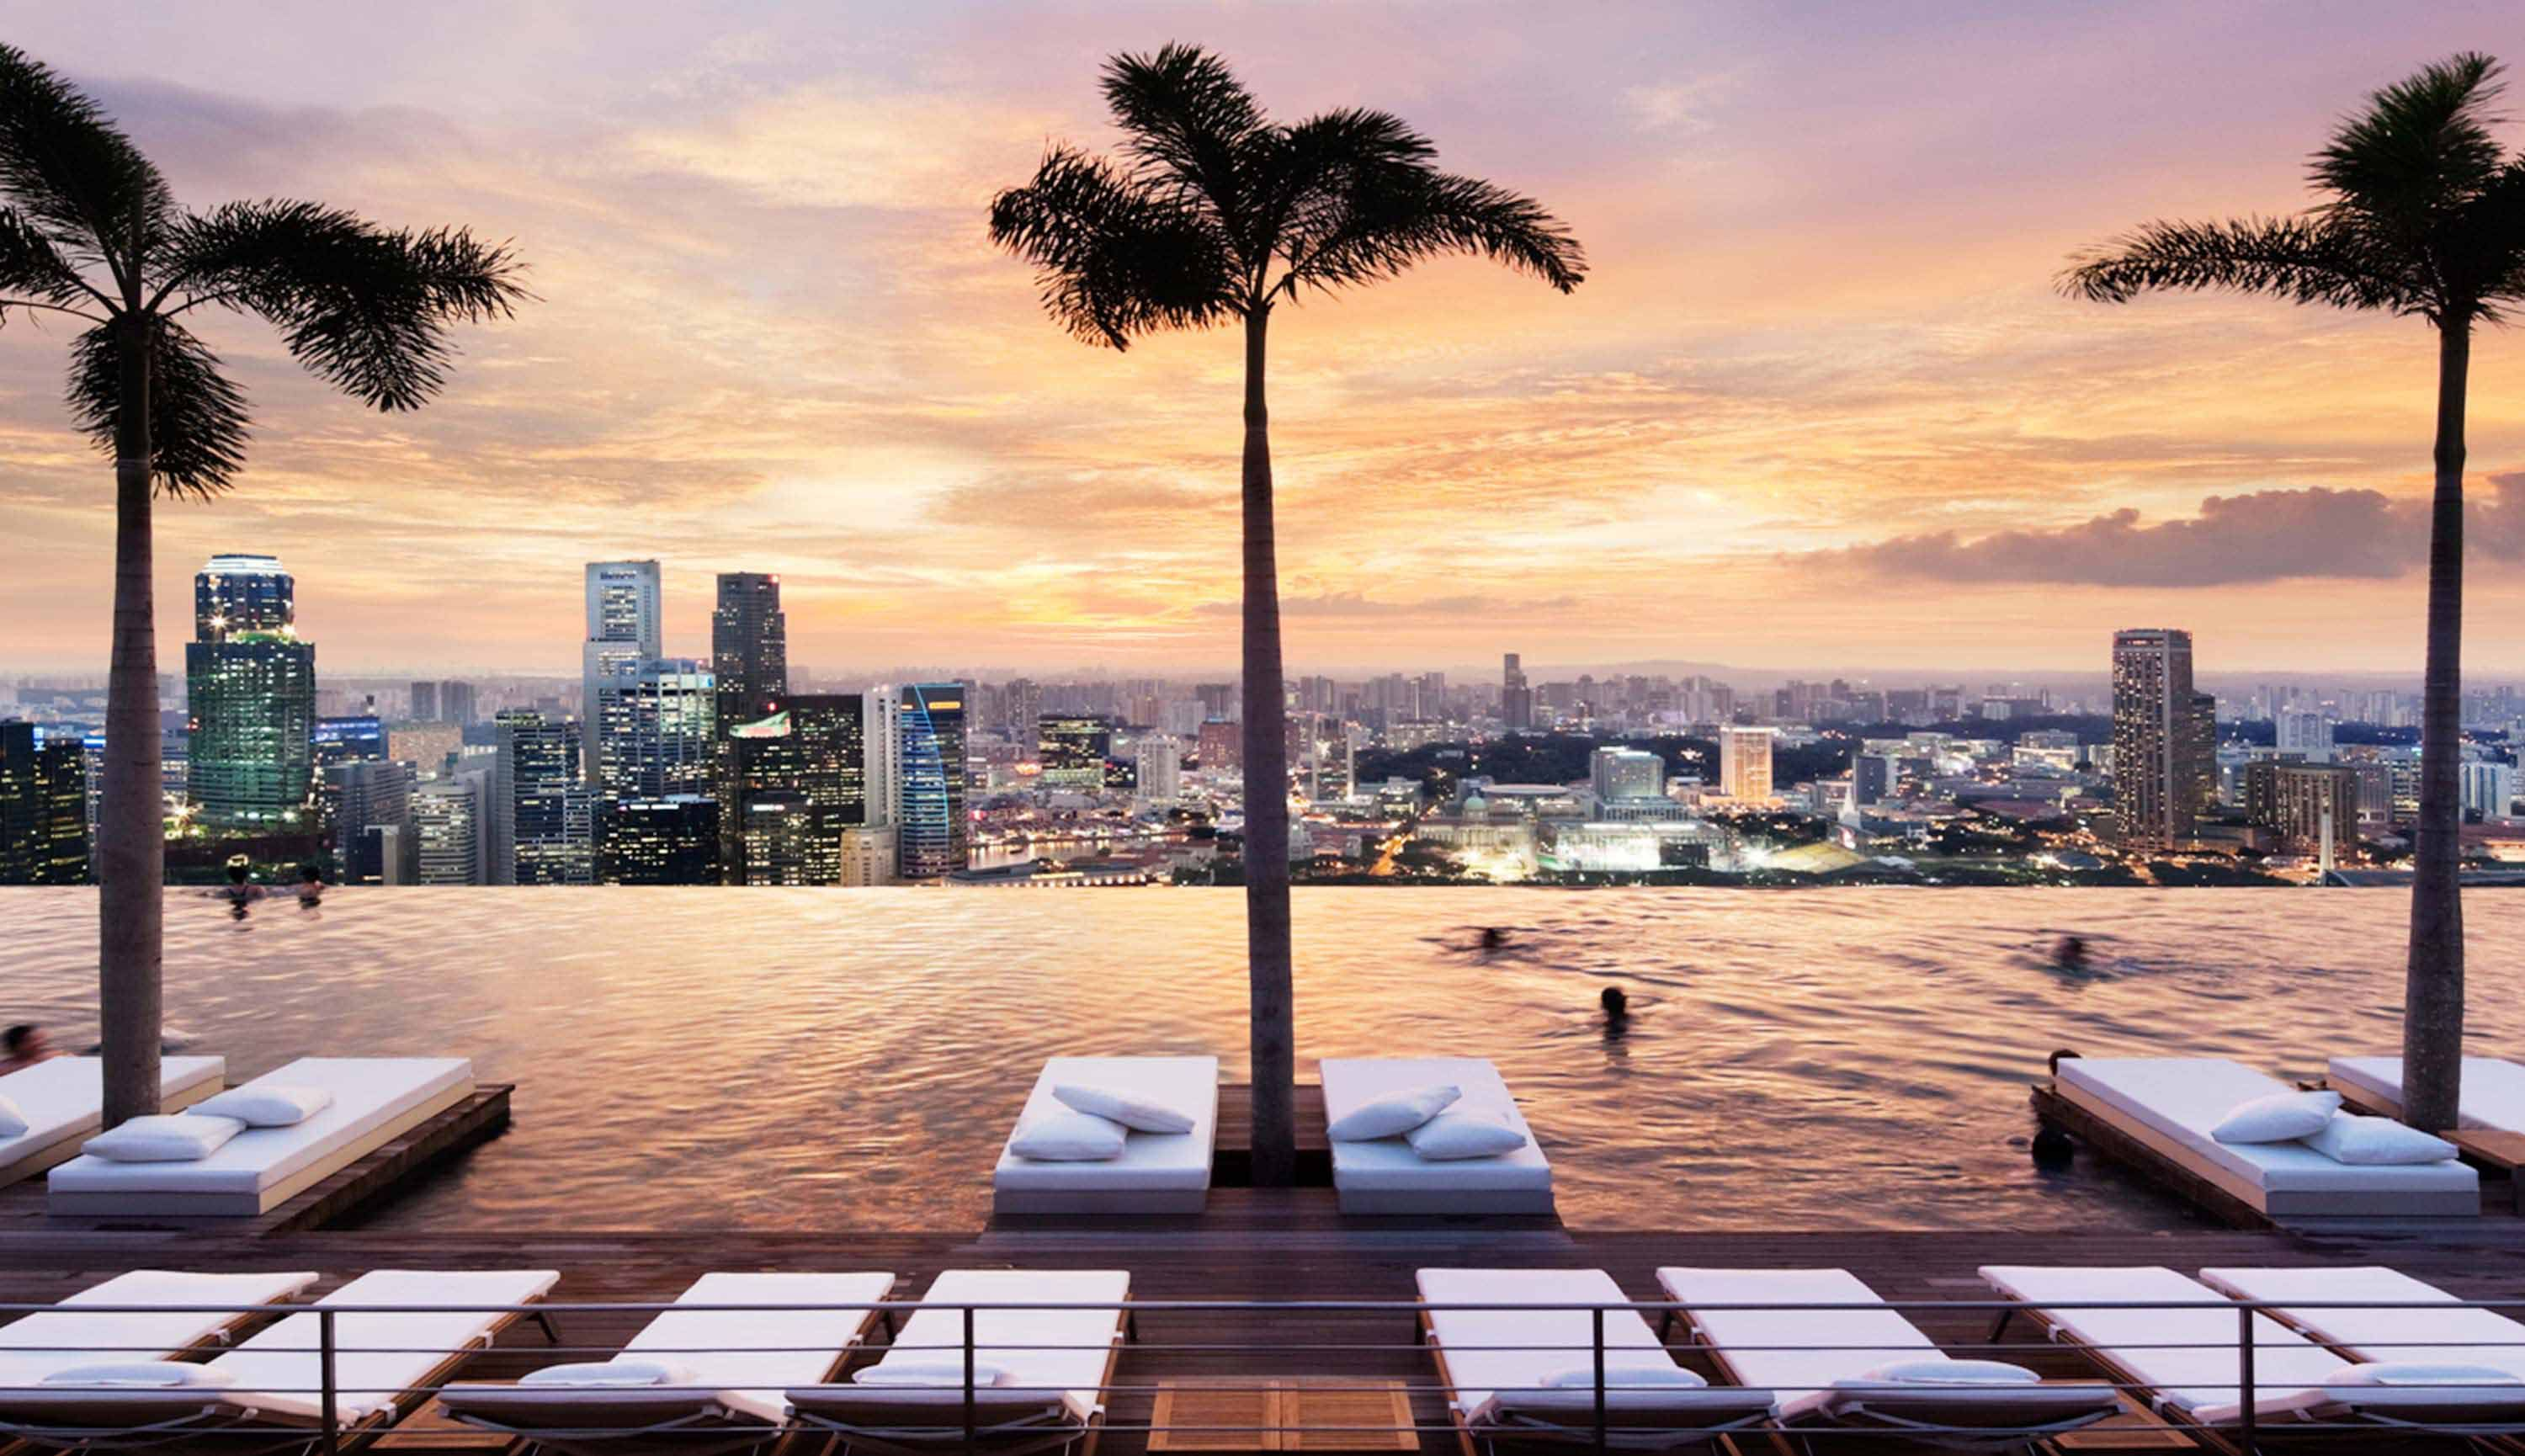 Marina Bay Sands Skypark Infinity Pool Singapore Sands Hotel Singapore Cool Swimming Pools Rooftop Pool